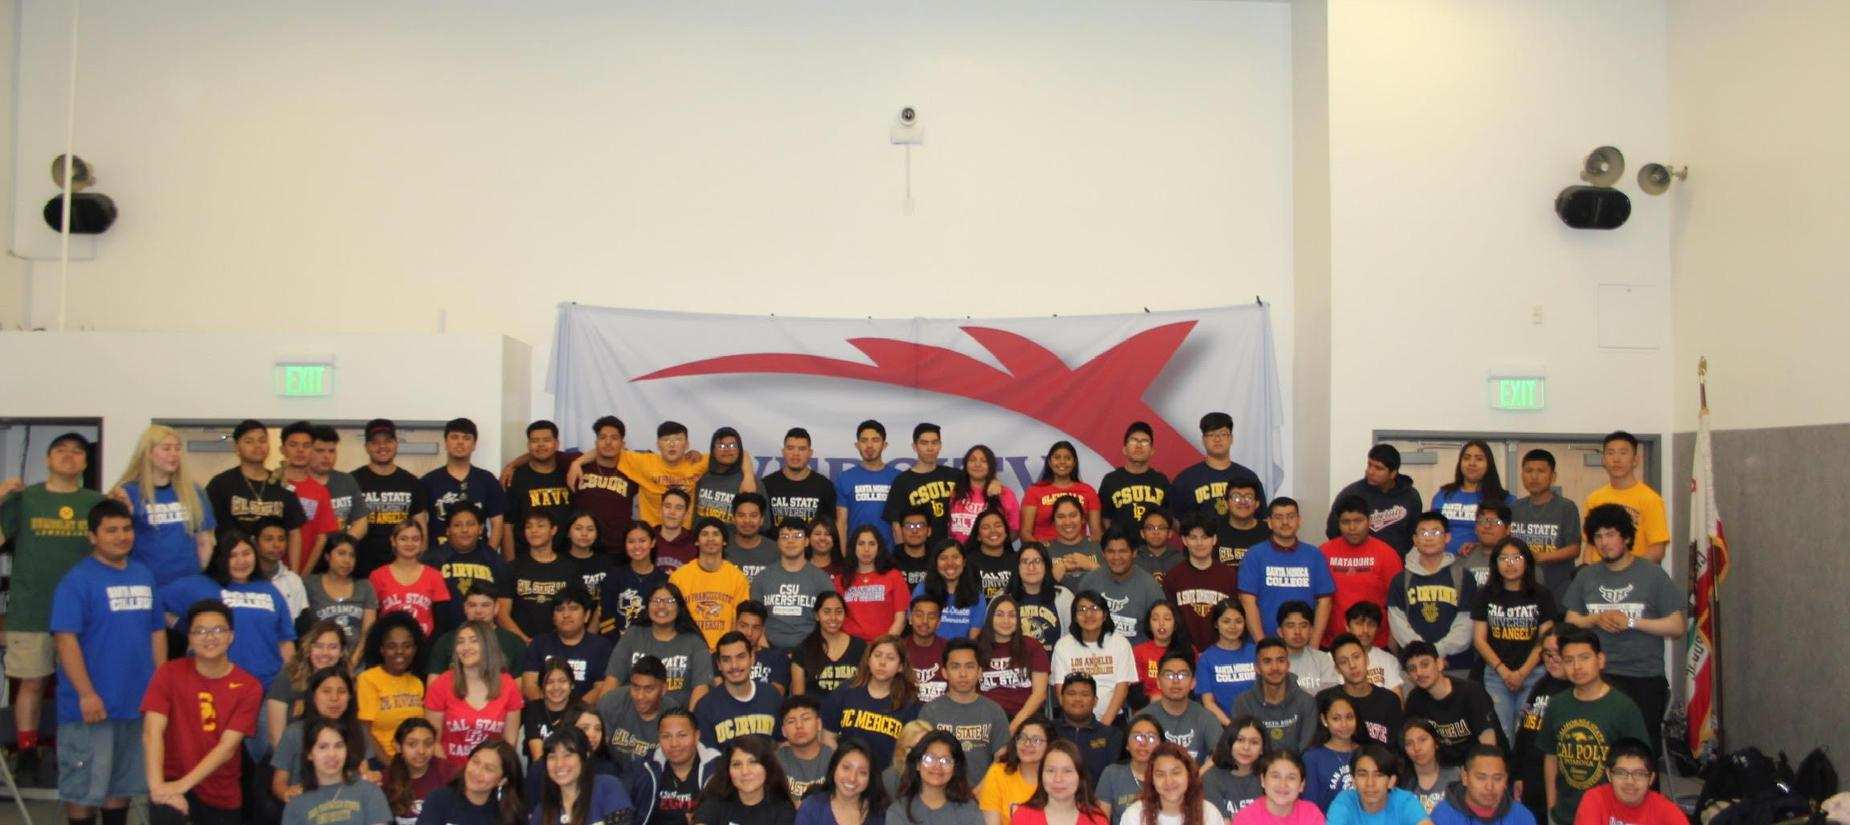 UPVHS students representing their college acceptances